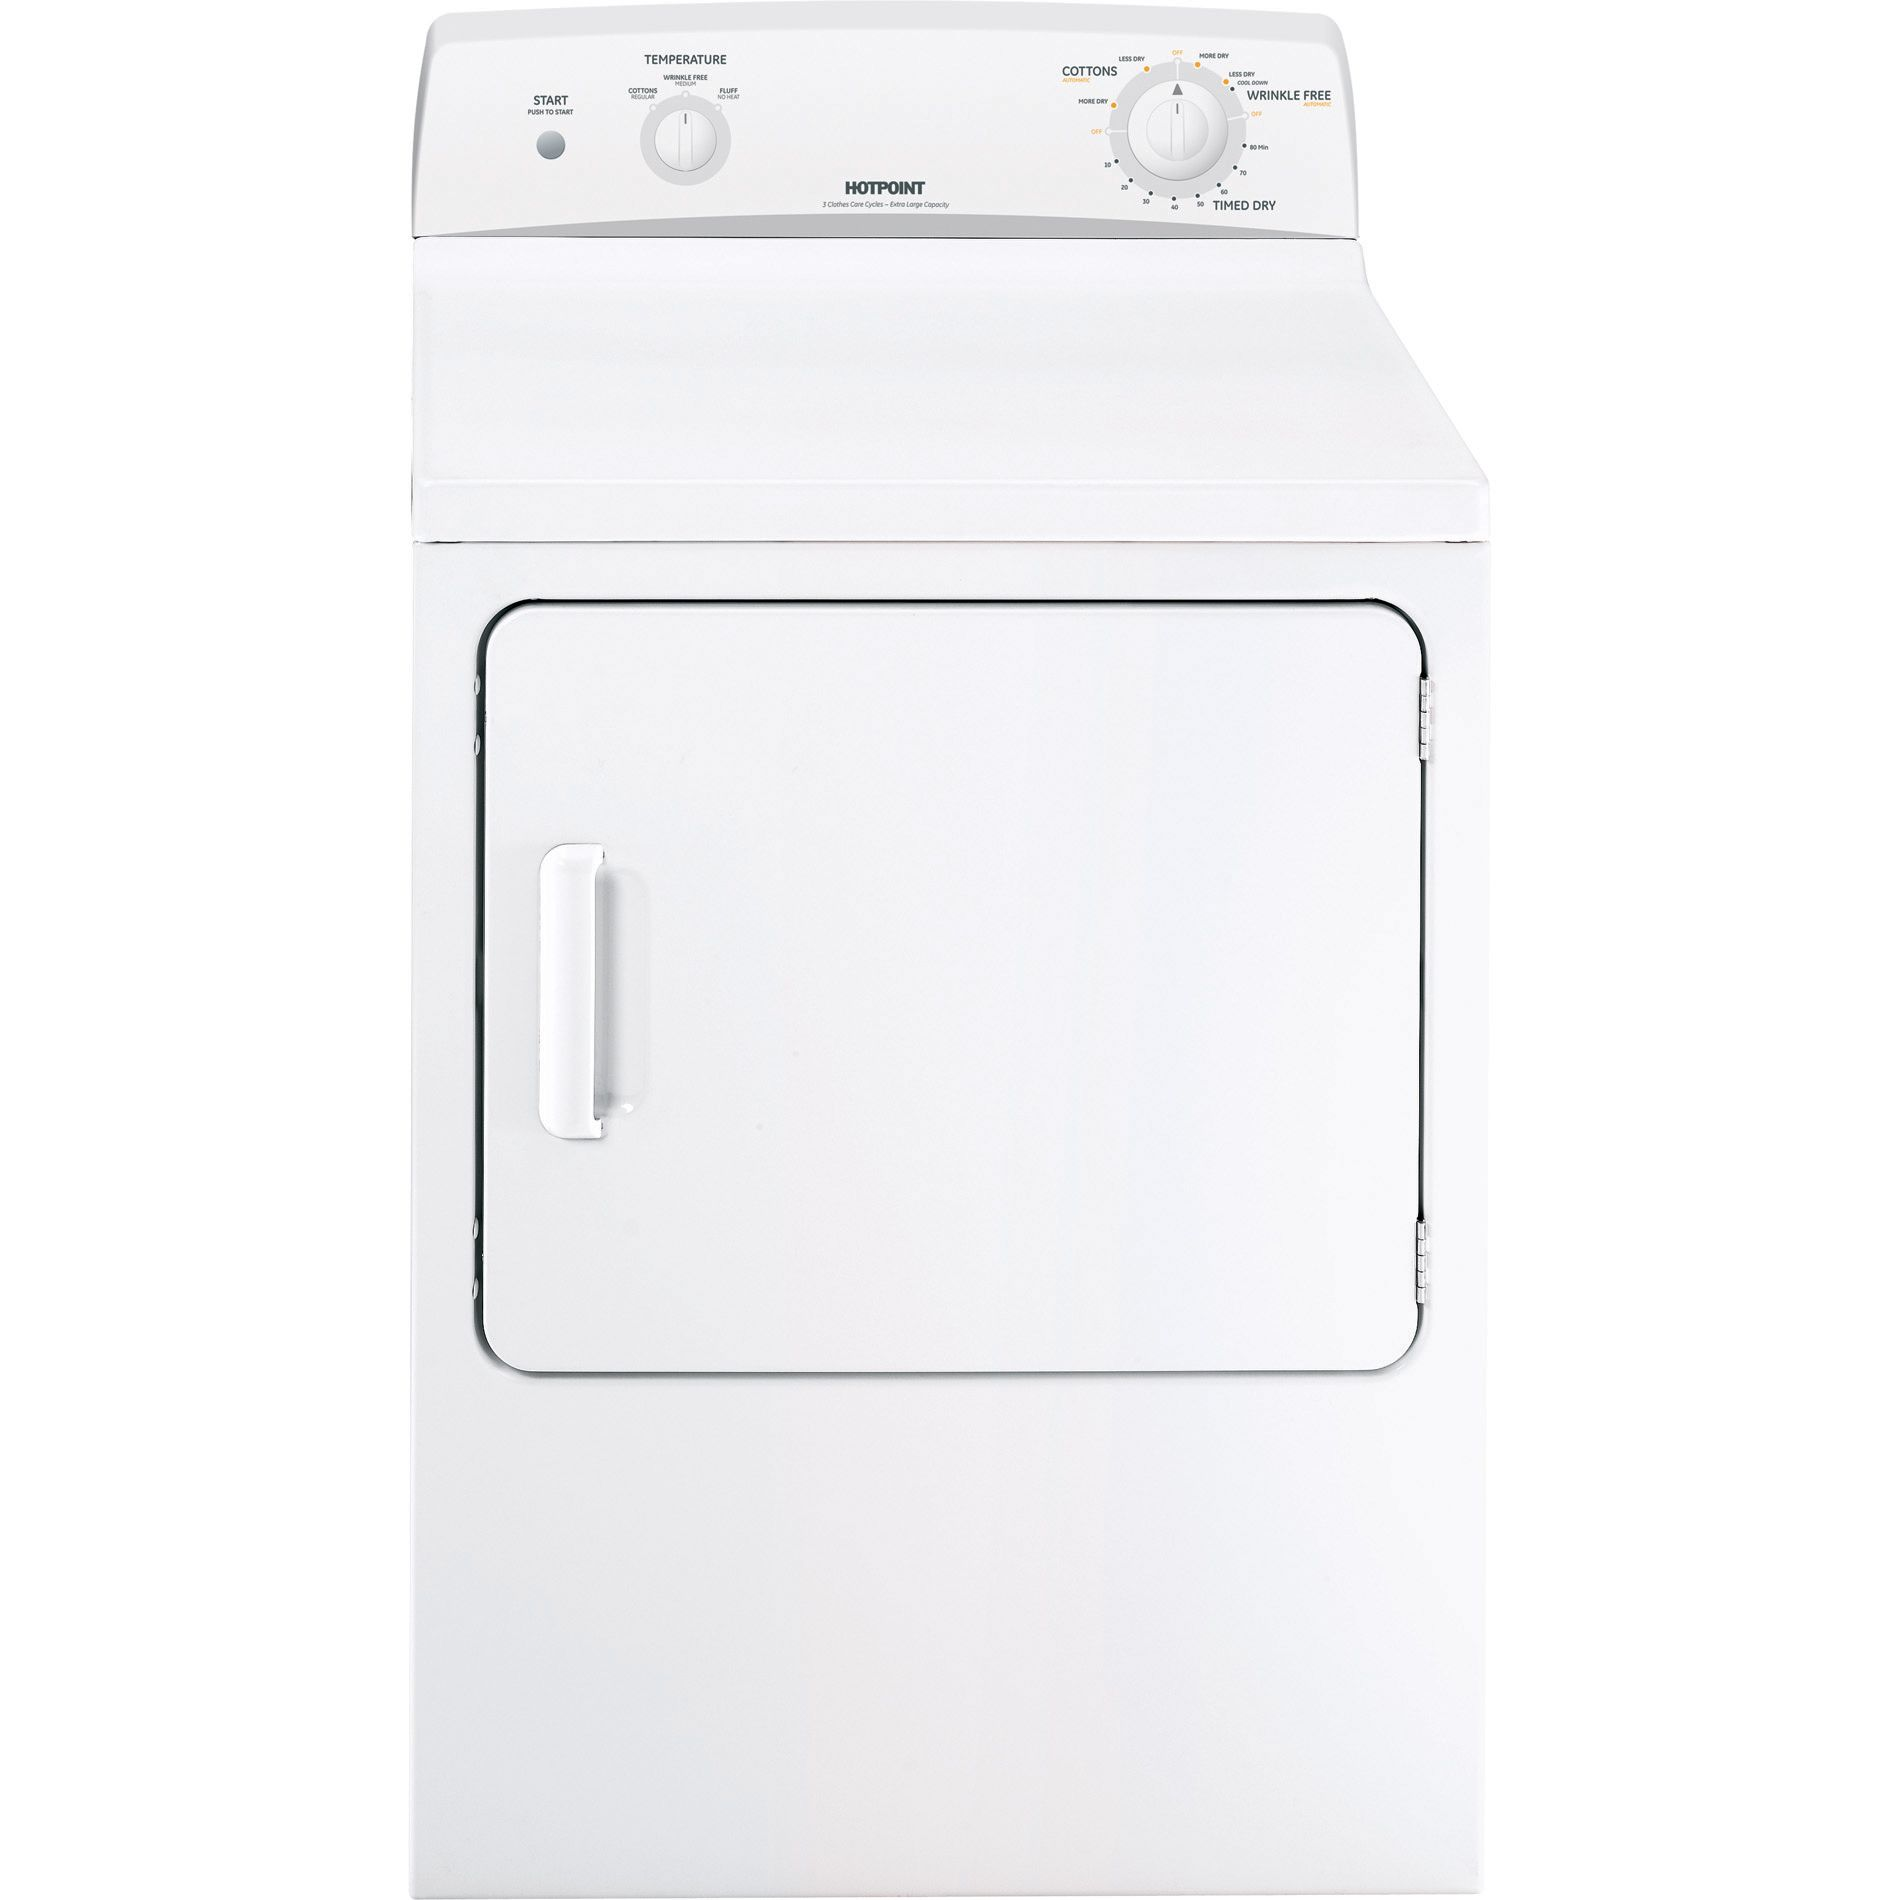 6.0 cu. ft. Electric Dryer